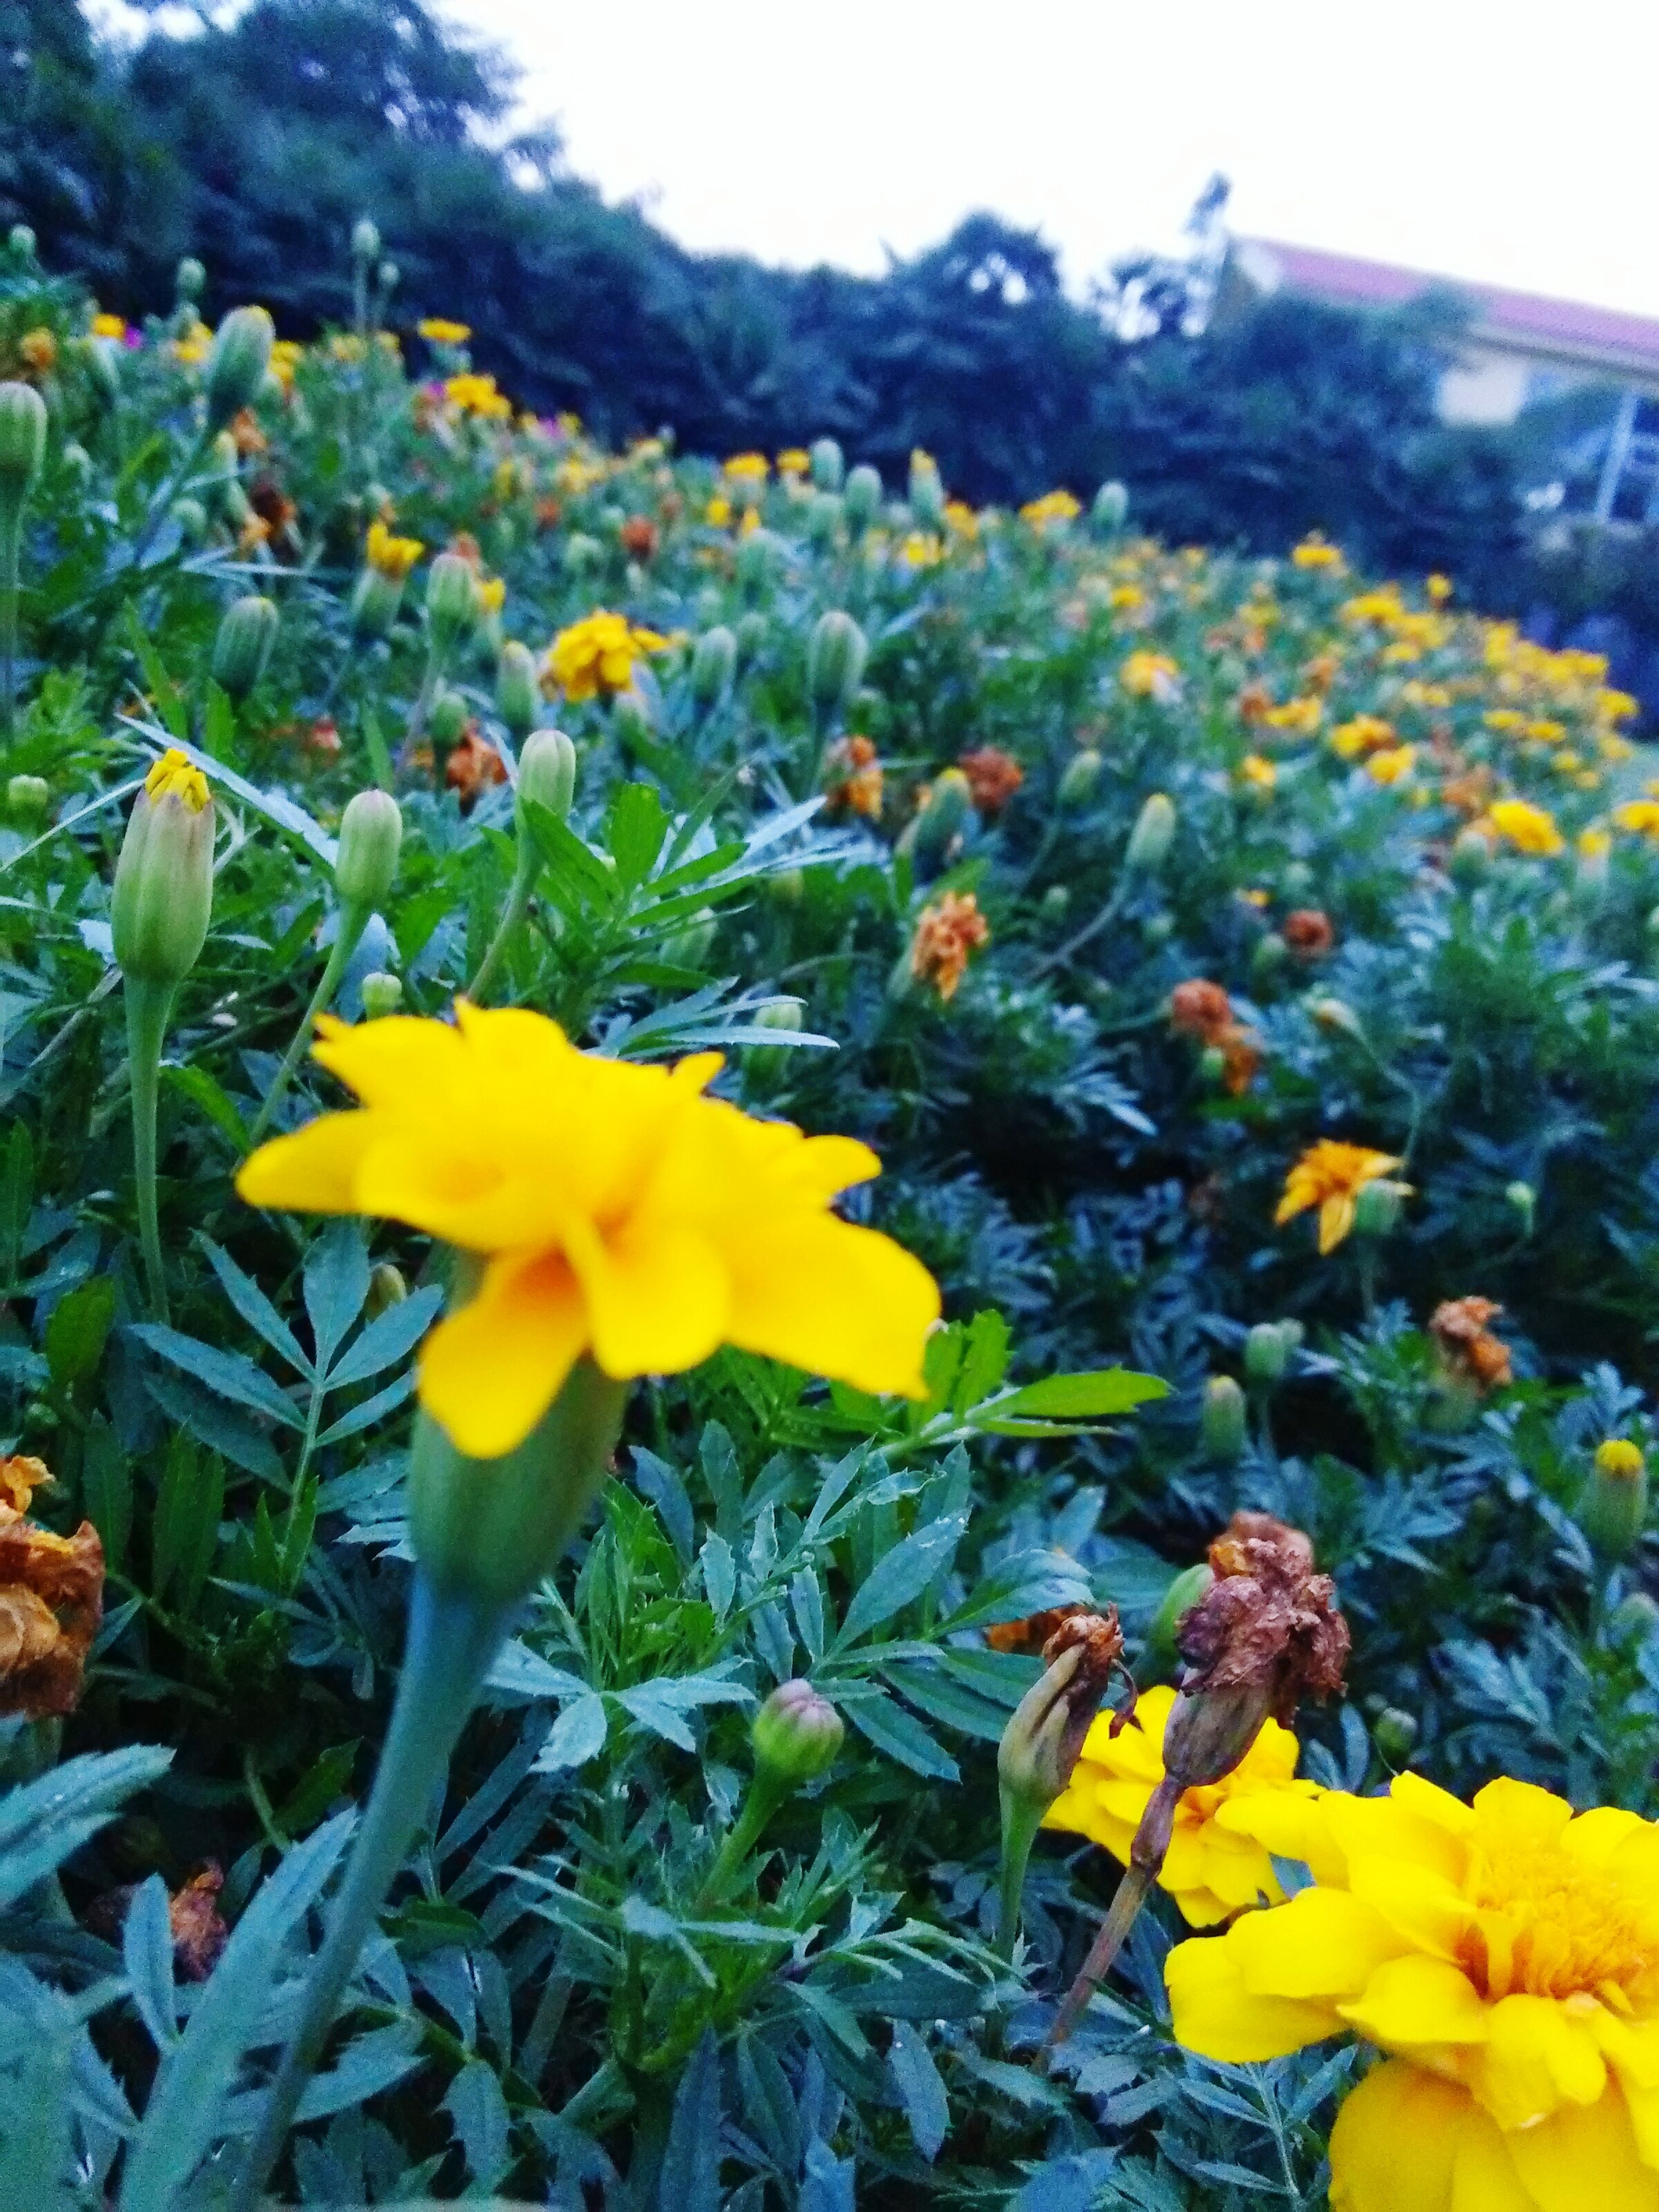 yellow, flower, freshness, fragility, growth, beauty in nature, field, petal, nature, plant, blooming, agriculture, rural scene, abundance, flower head, in bloom, landscape, close-up, blossom, day